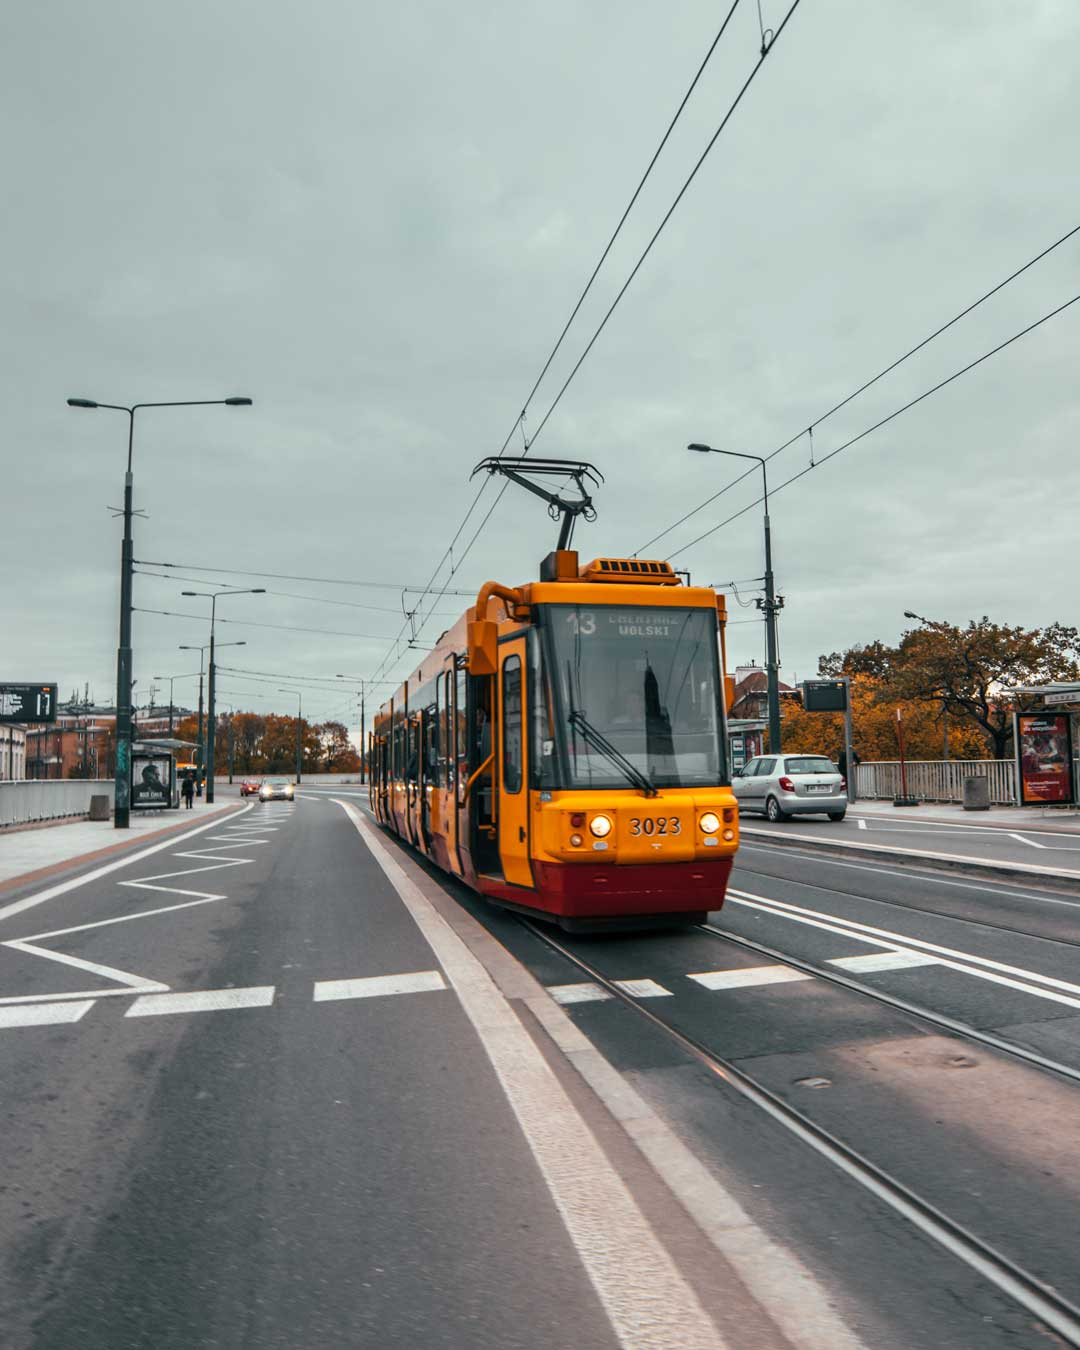 tram train in Warsaw travelshare.gr